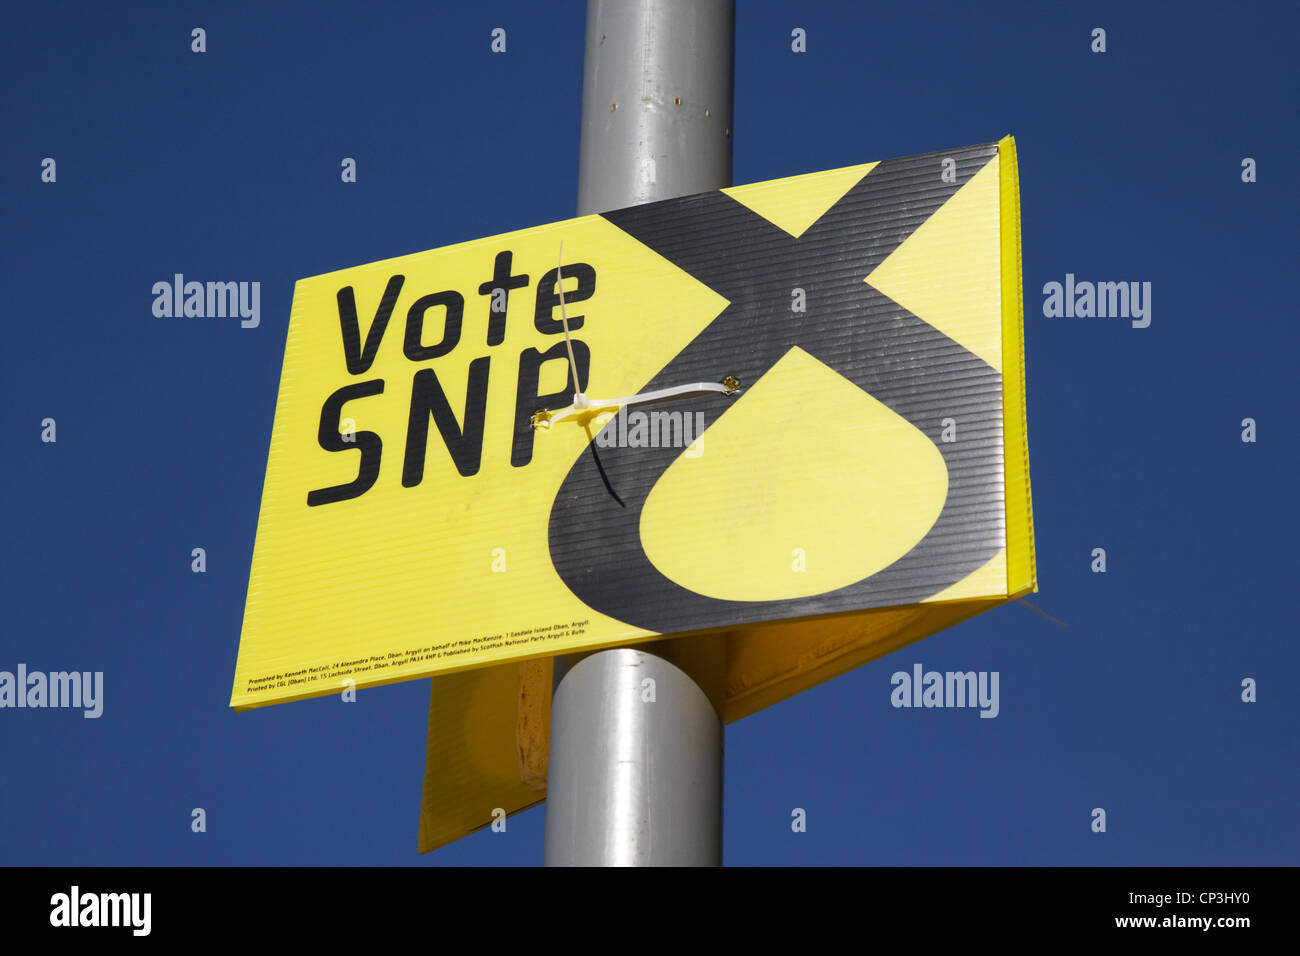 scottish national party snp election poster in scotland - Stock Image